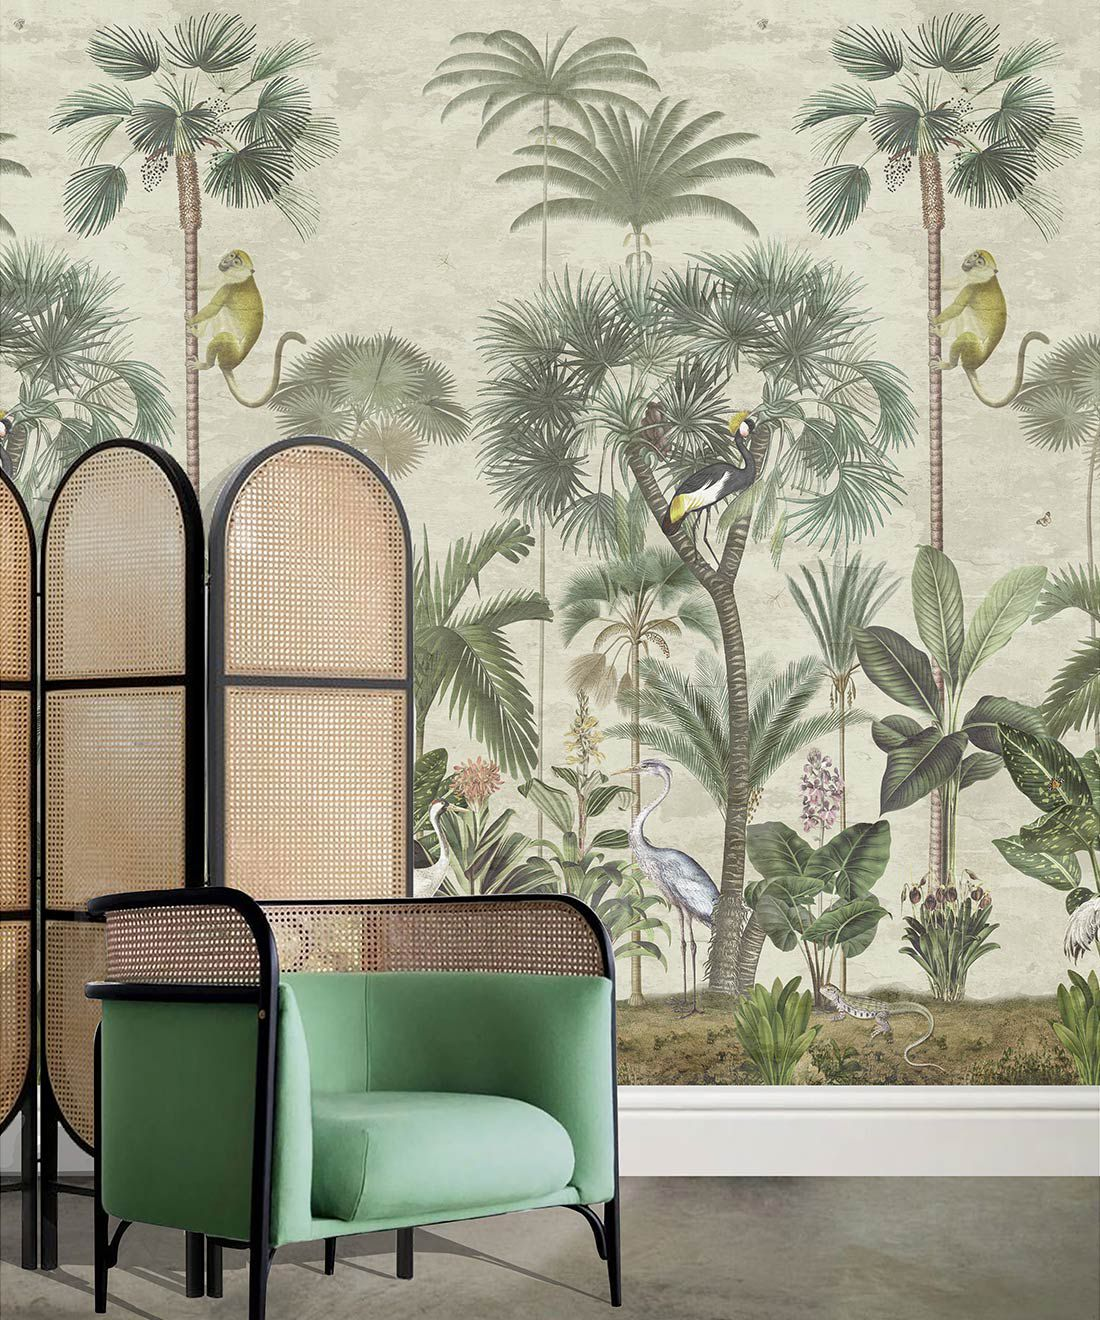 Indian Summer Wallpaper Mural •Bethany Linz • Palm Tree Mural • Aged • Insitu